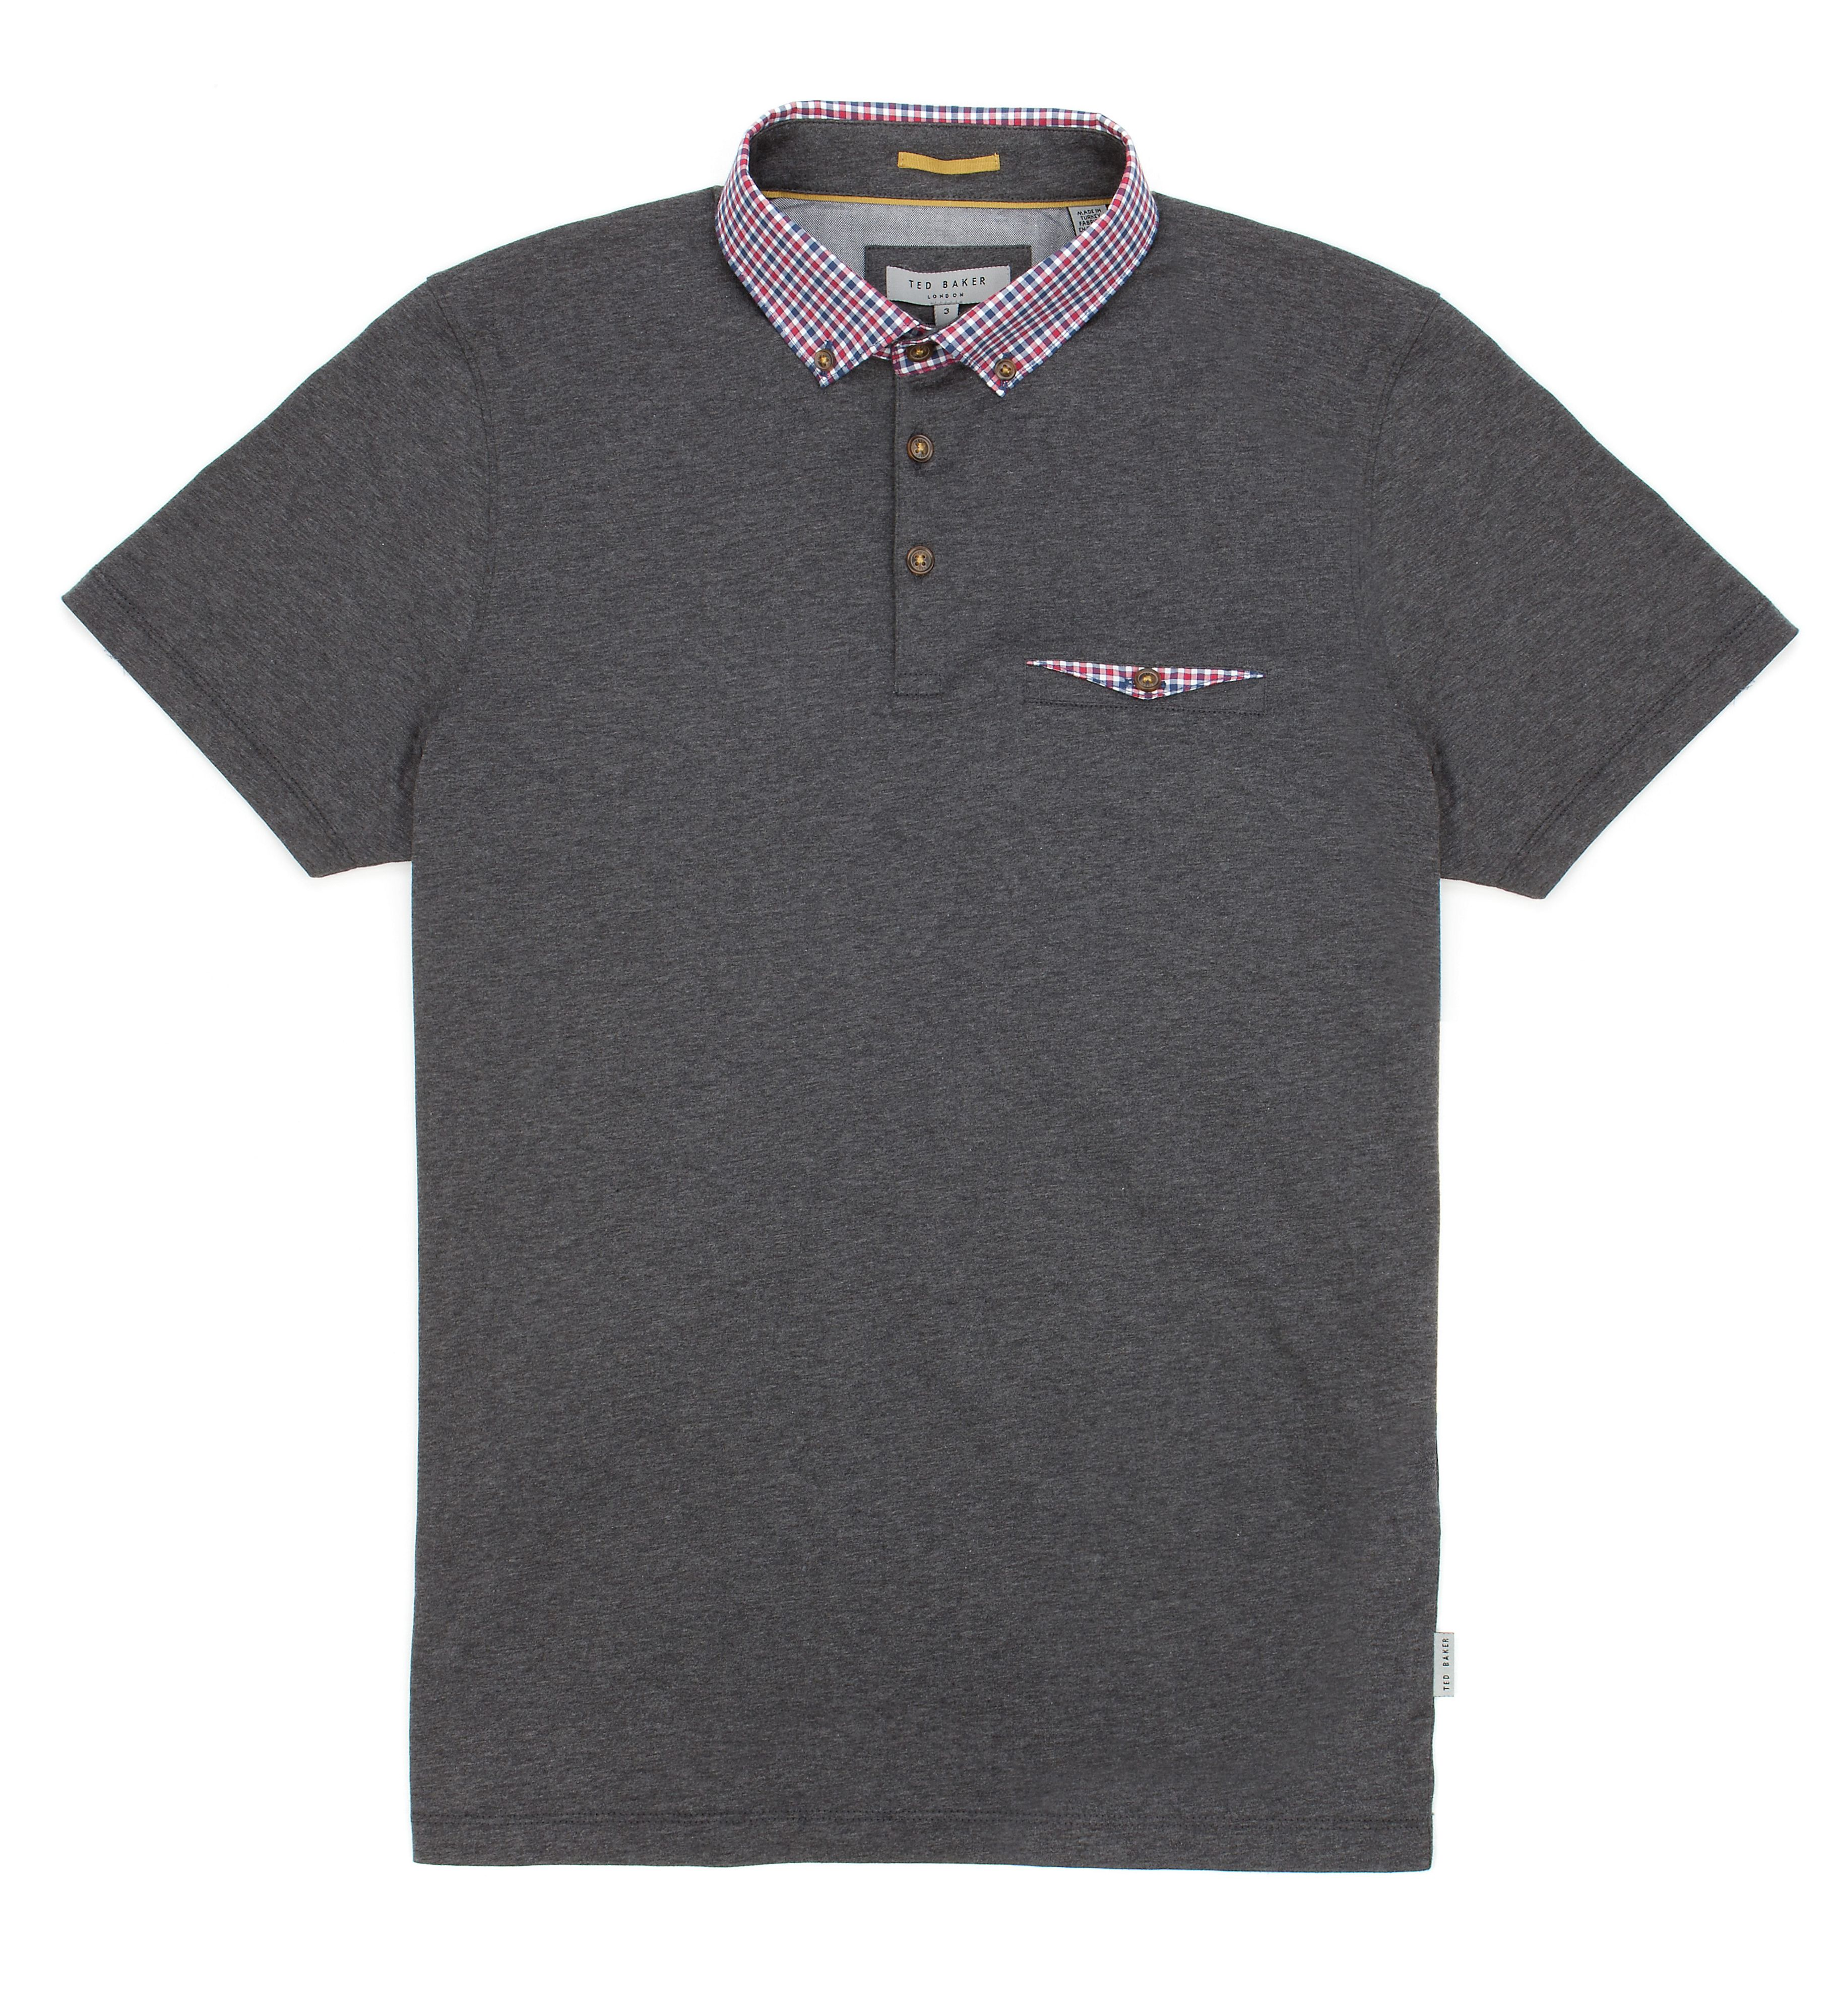 Outchek check collar polo